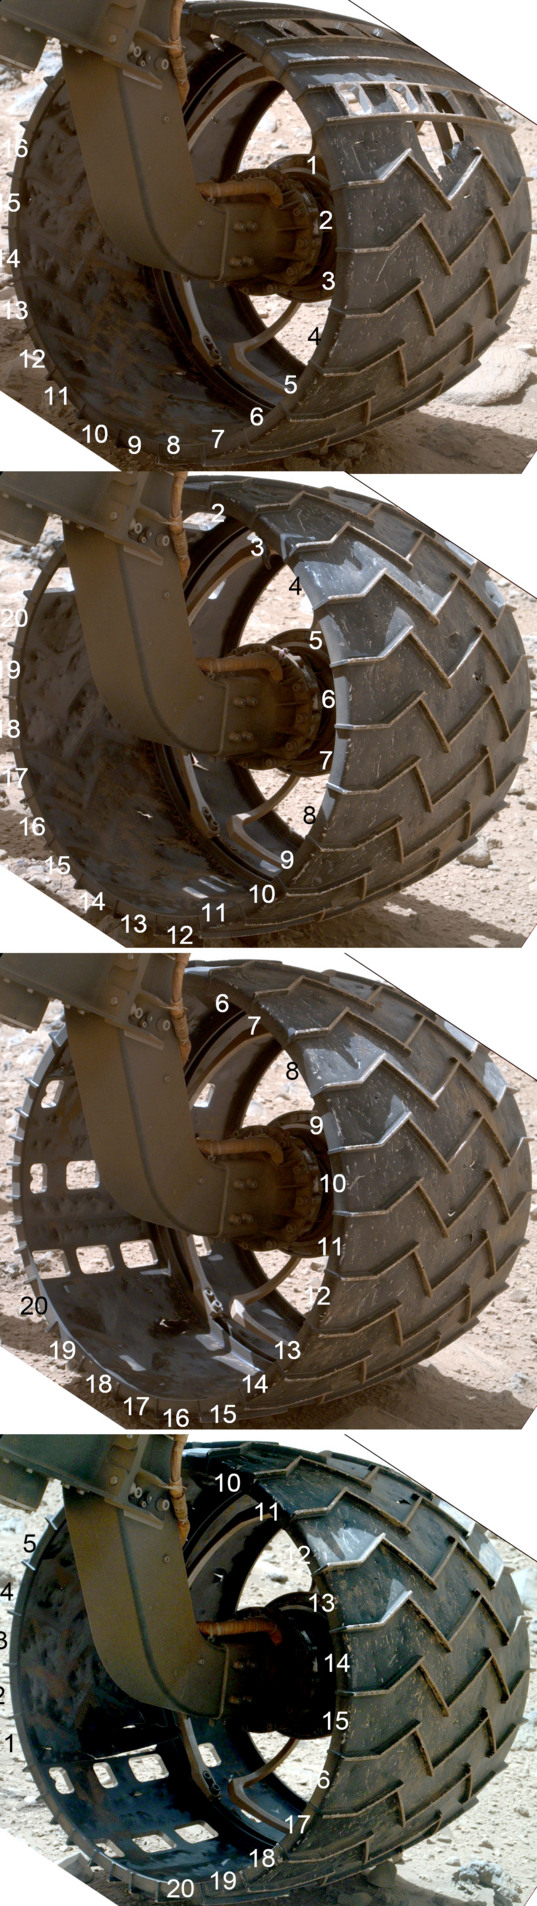 Curiosity wheel survey, sol 513: Left front wheel